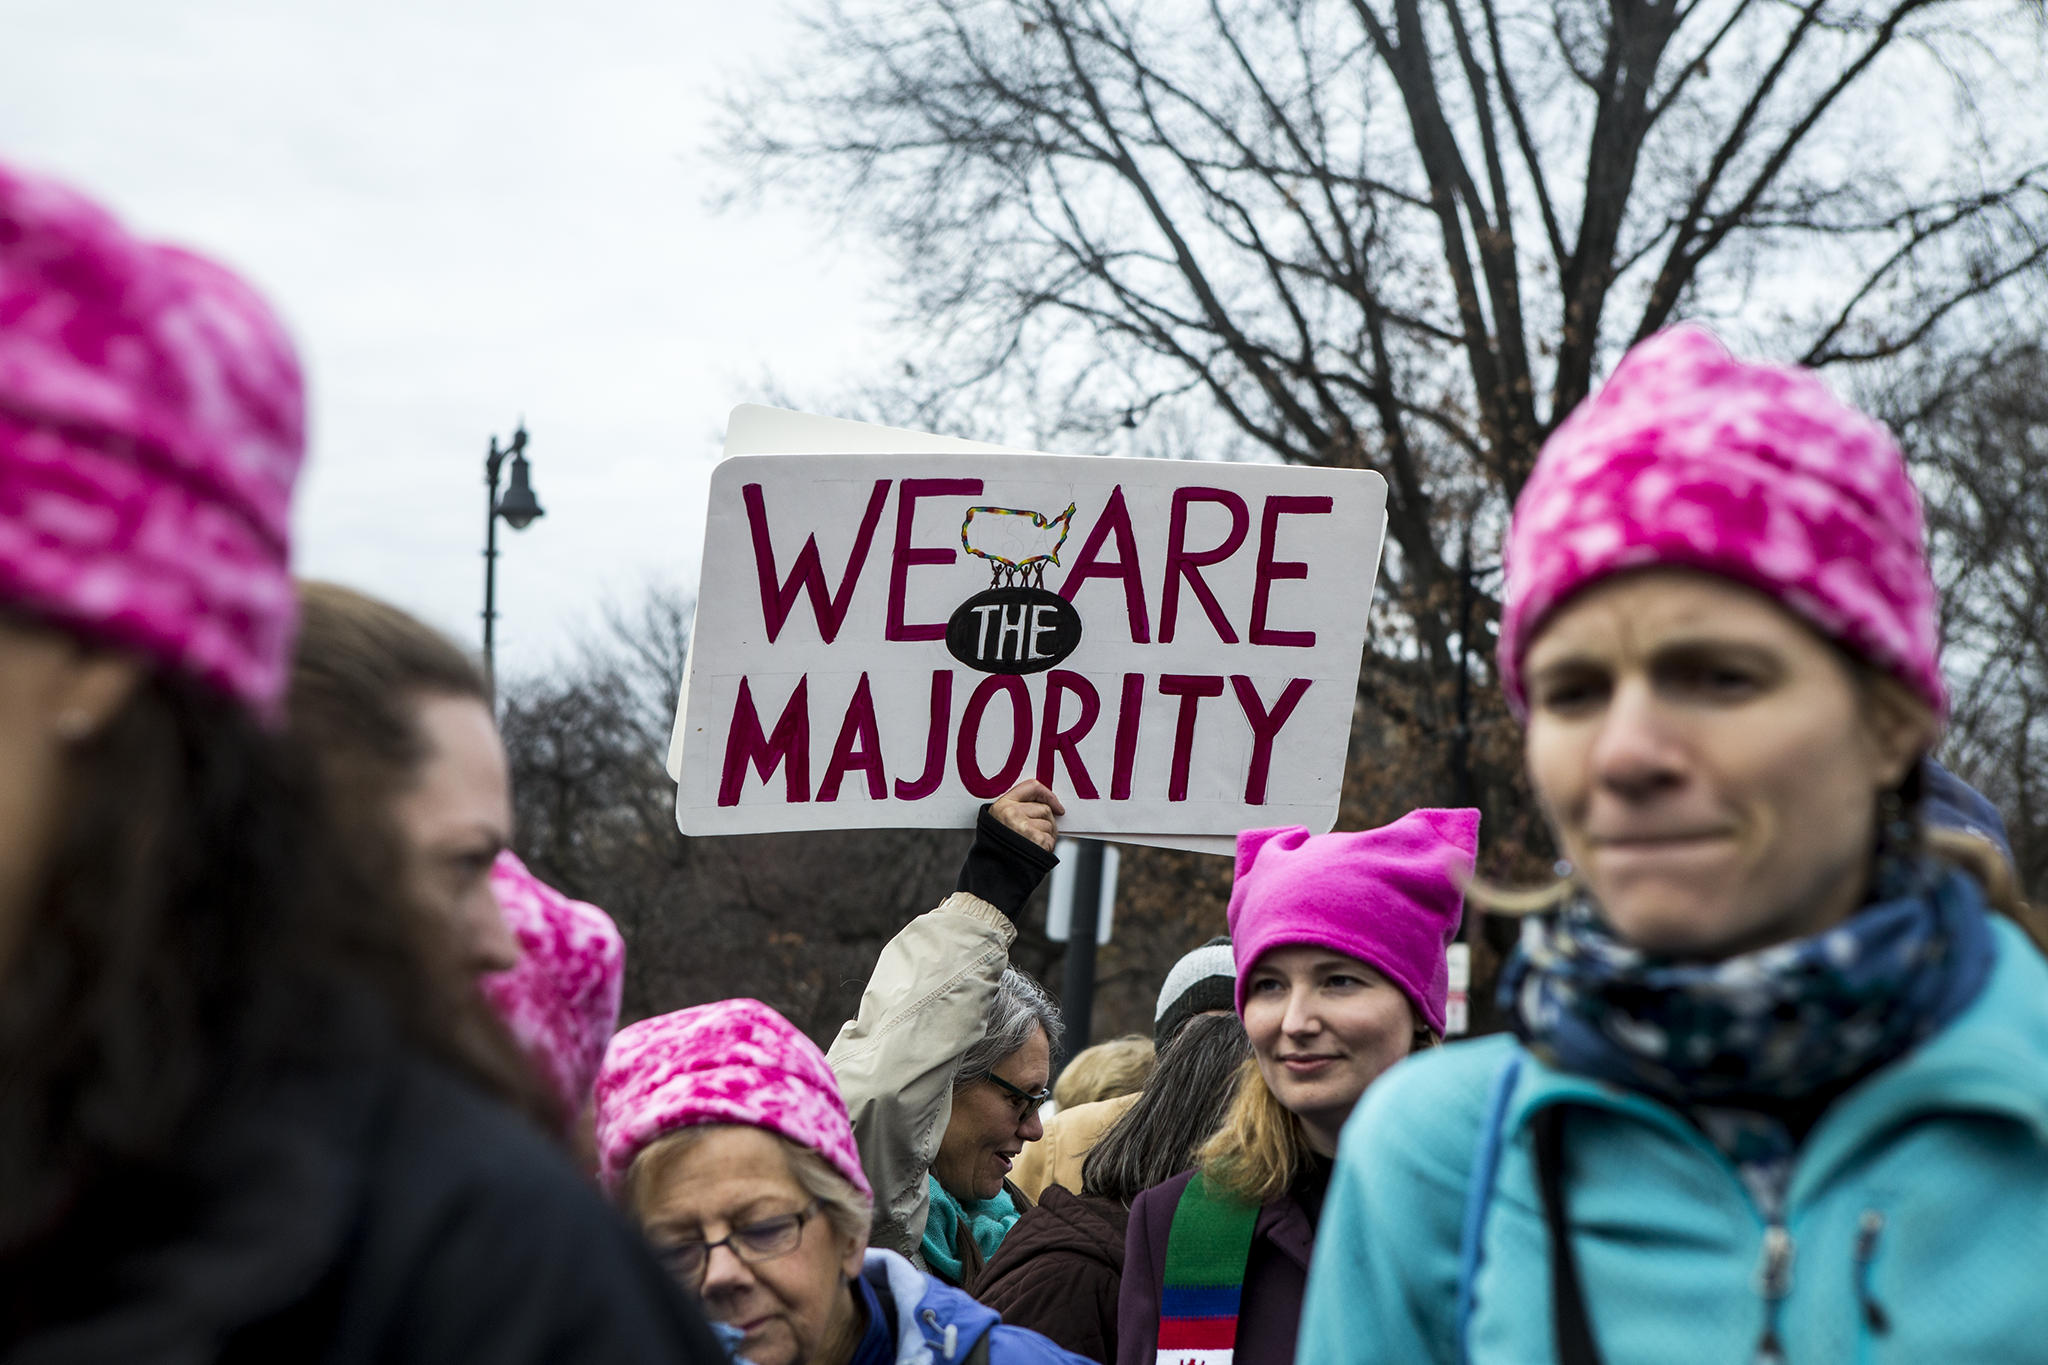 """protest sign at the women's march on washington sister march in boston reading """"we are the majority"""" surrounded by women wearing pink pussy hats."""